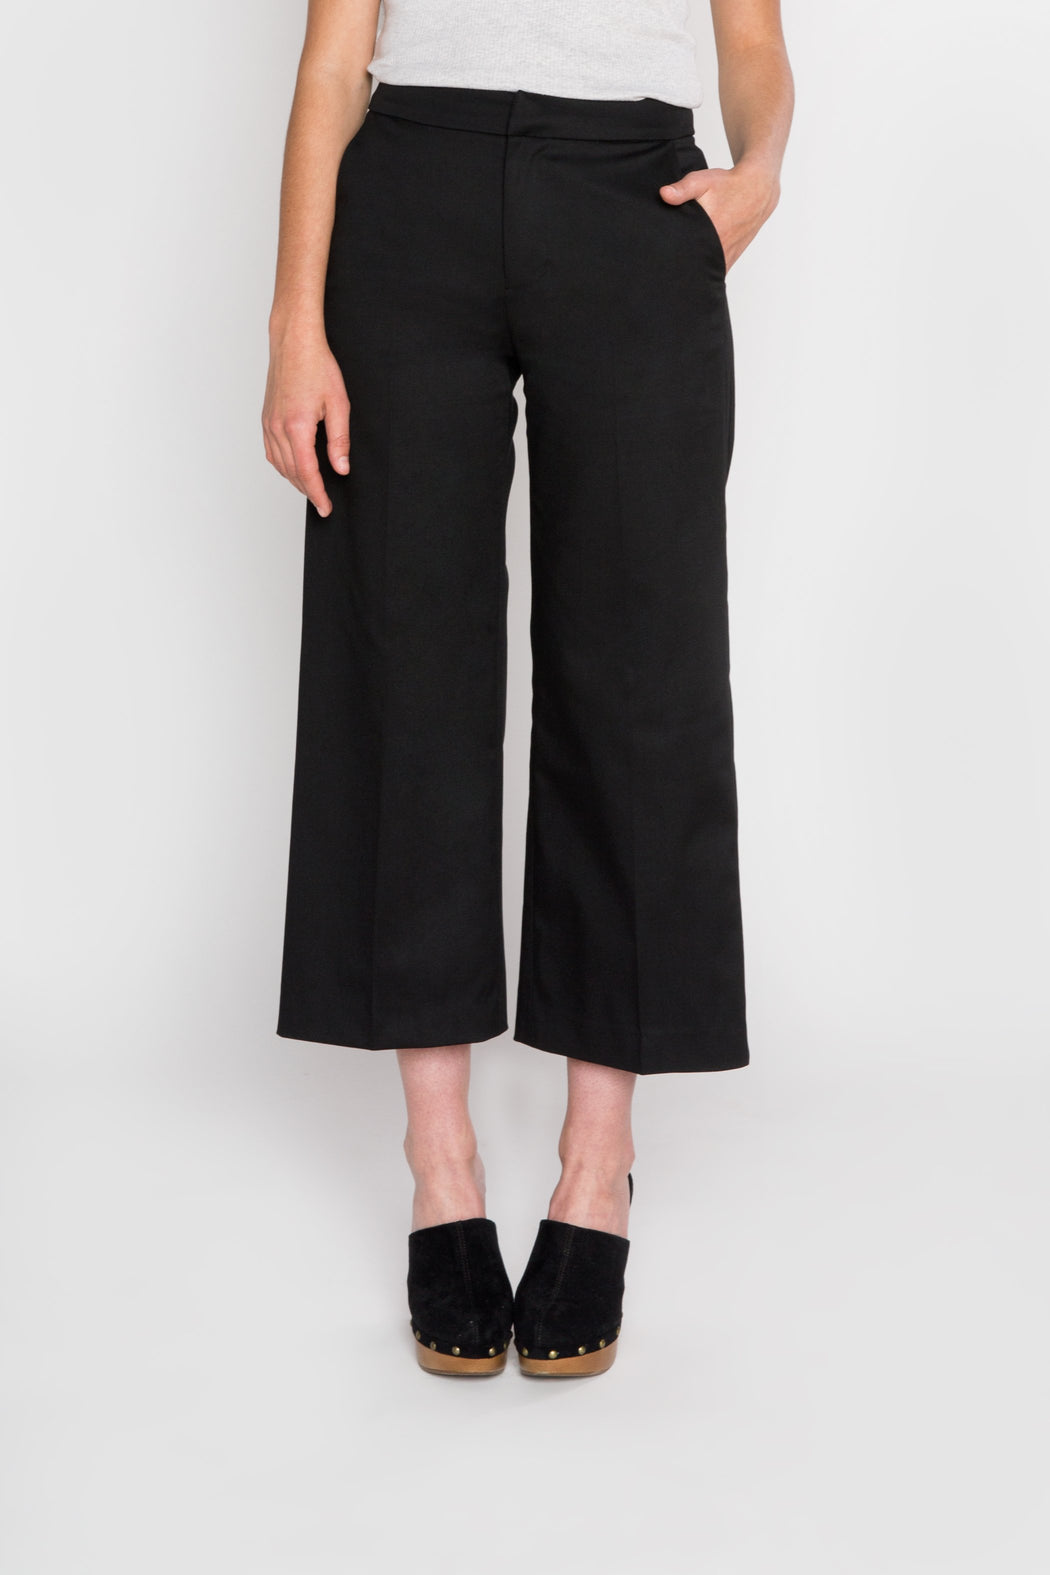 The Gloria Pant - front zoom